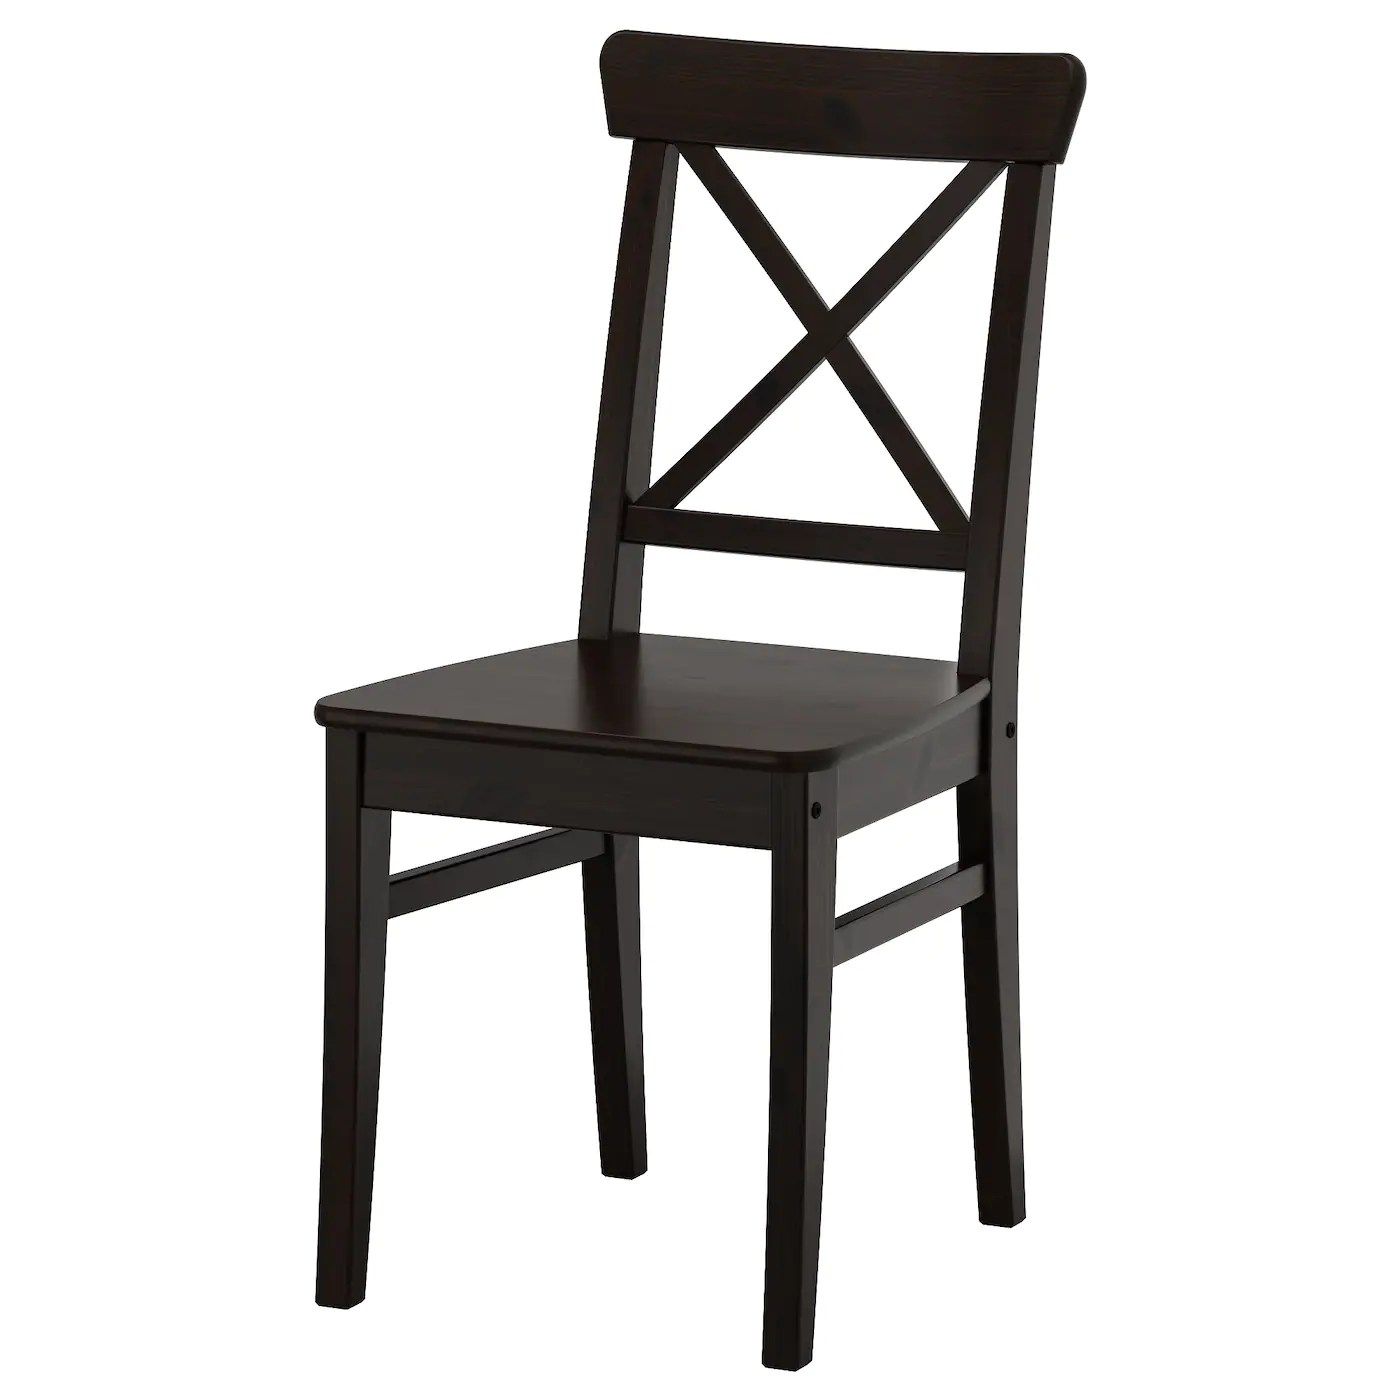 Ikea Black Chair Ingolf Chair Brown Black Ikea